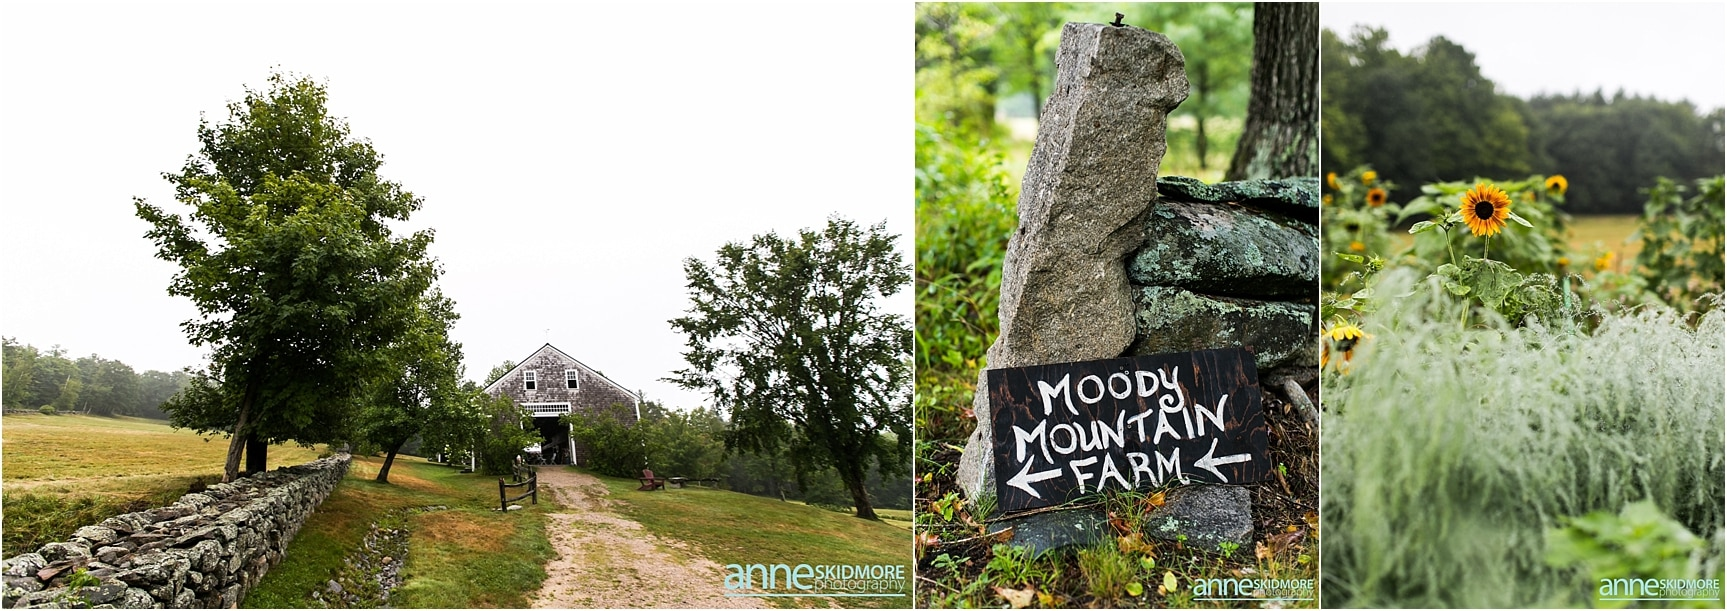 moody_mountain_farm_wedding__001